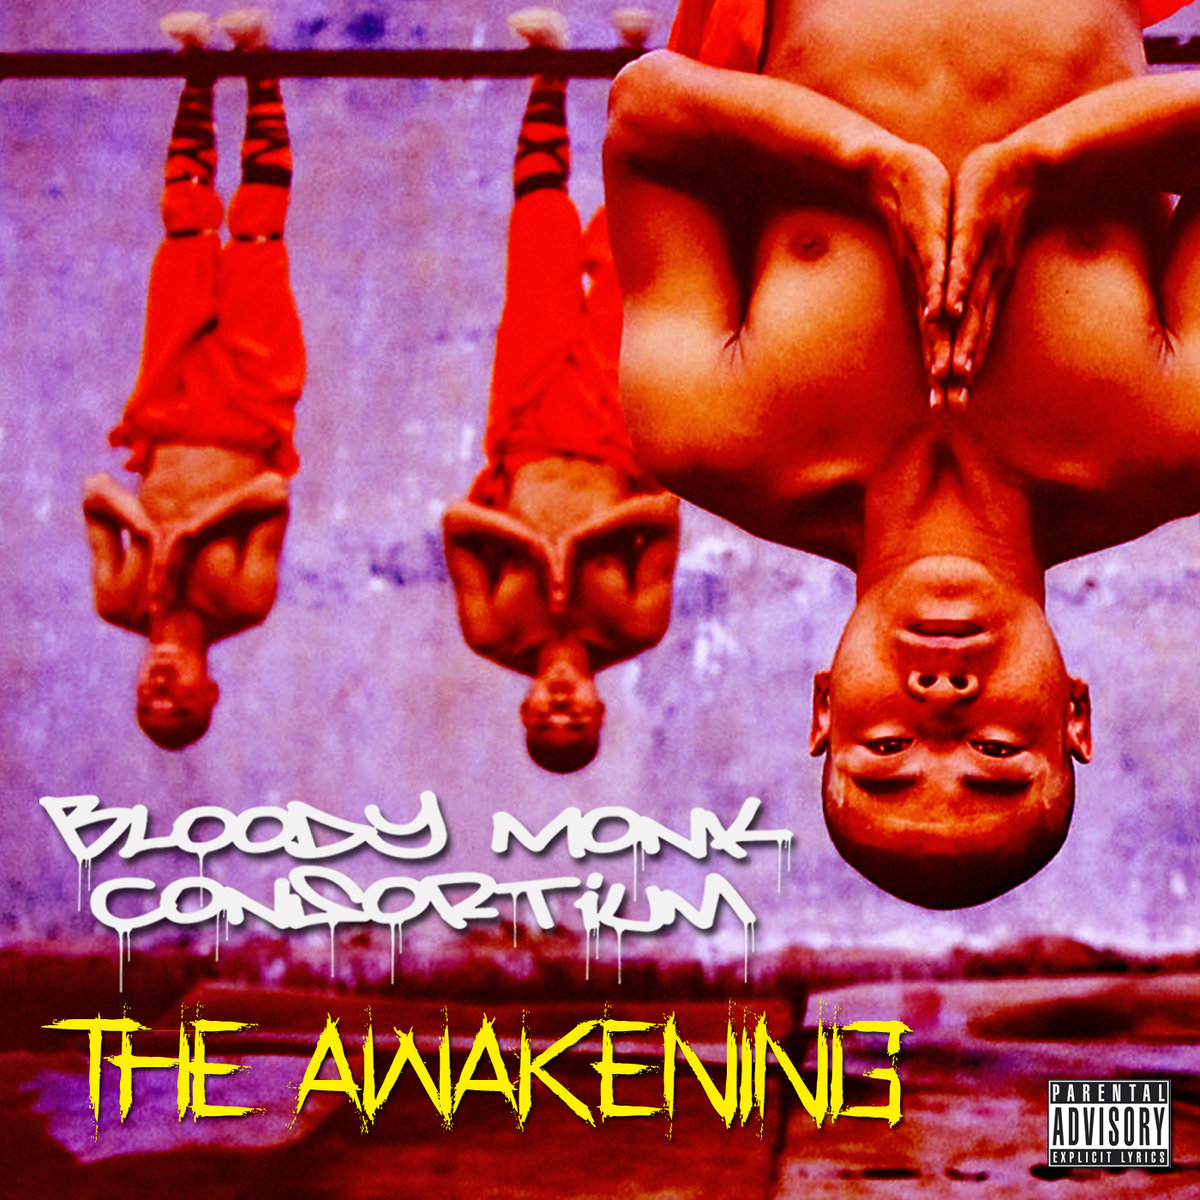 Bloody_monk_consortium_presenta_the_awakening